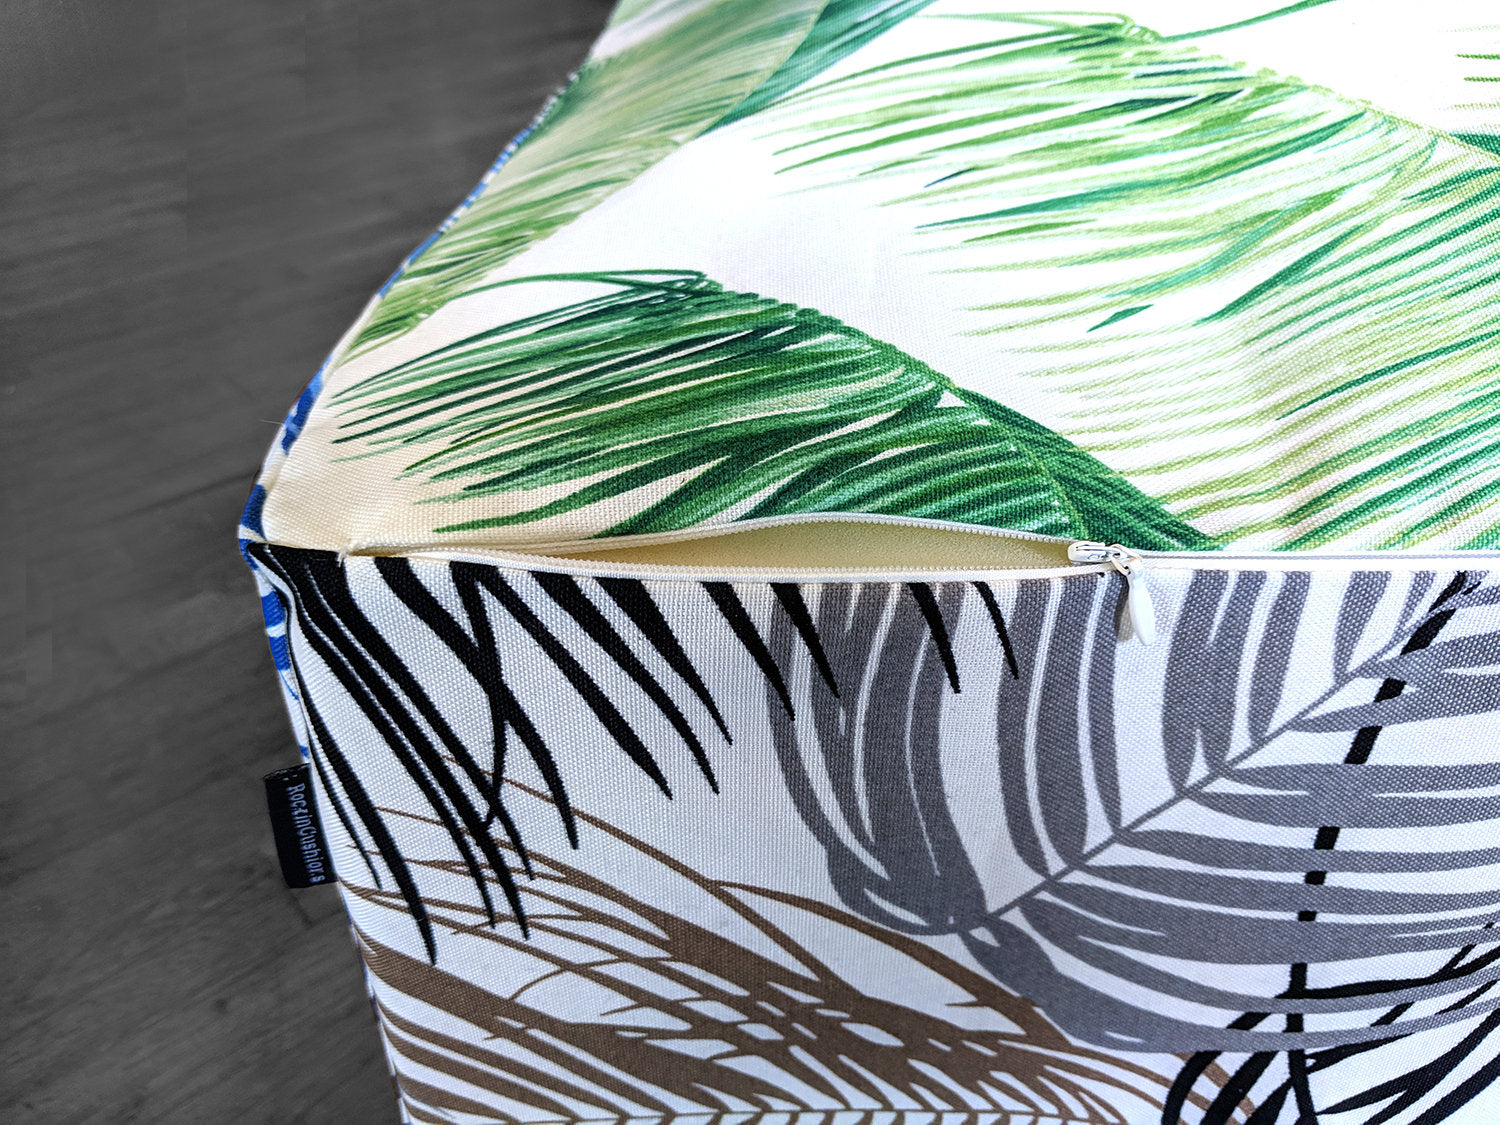 Floor Pouf Cover Green Blue Brown Palmas Tropical Palm Leaves Ottoman Affordable Designer Custom Handmade Trendy Fashionable Locally Made High Quality Vector floral background in a trendy minimalistic linear style. usd